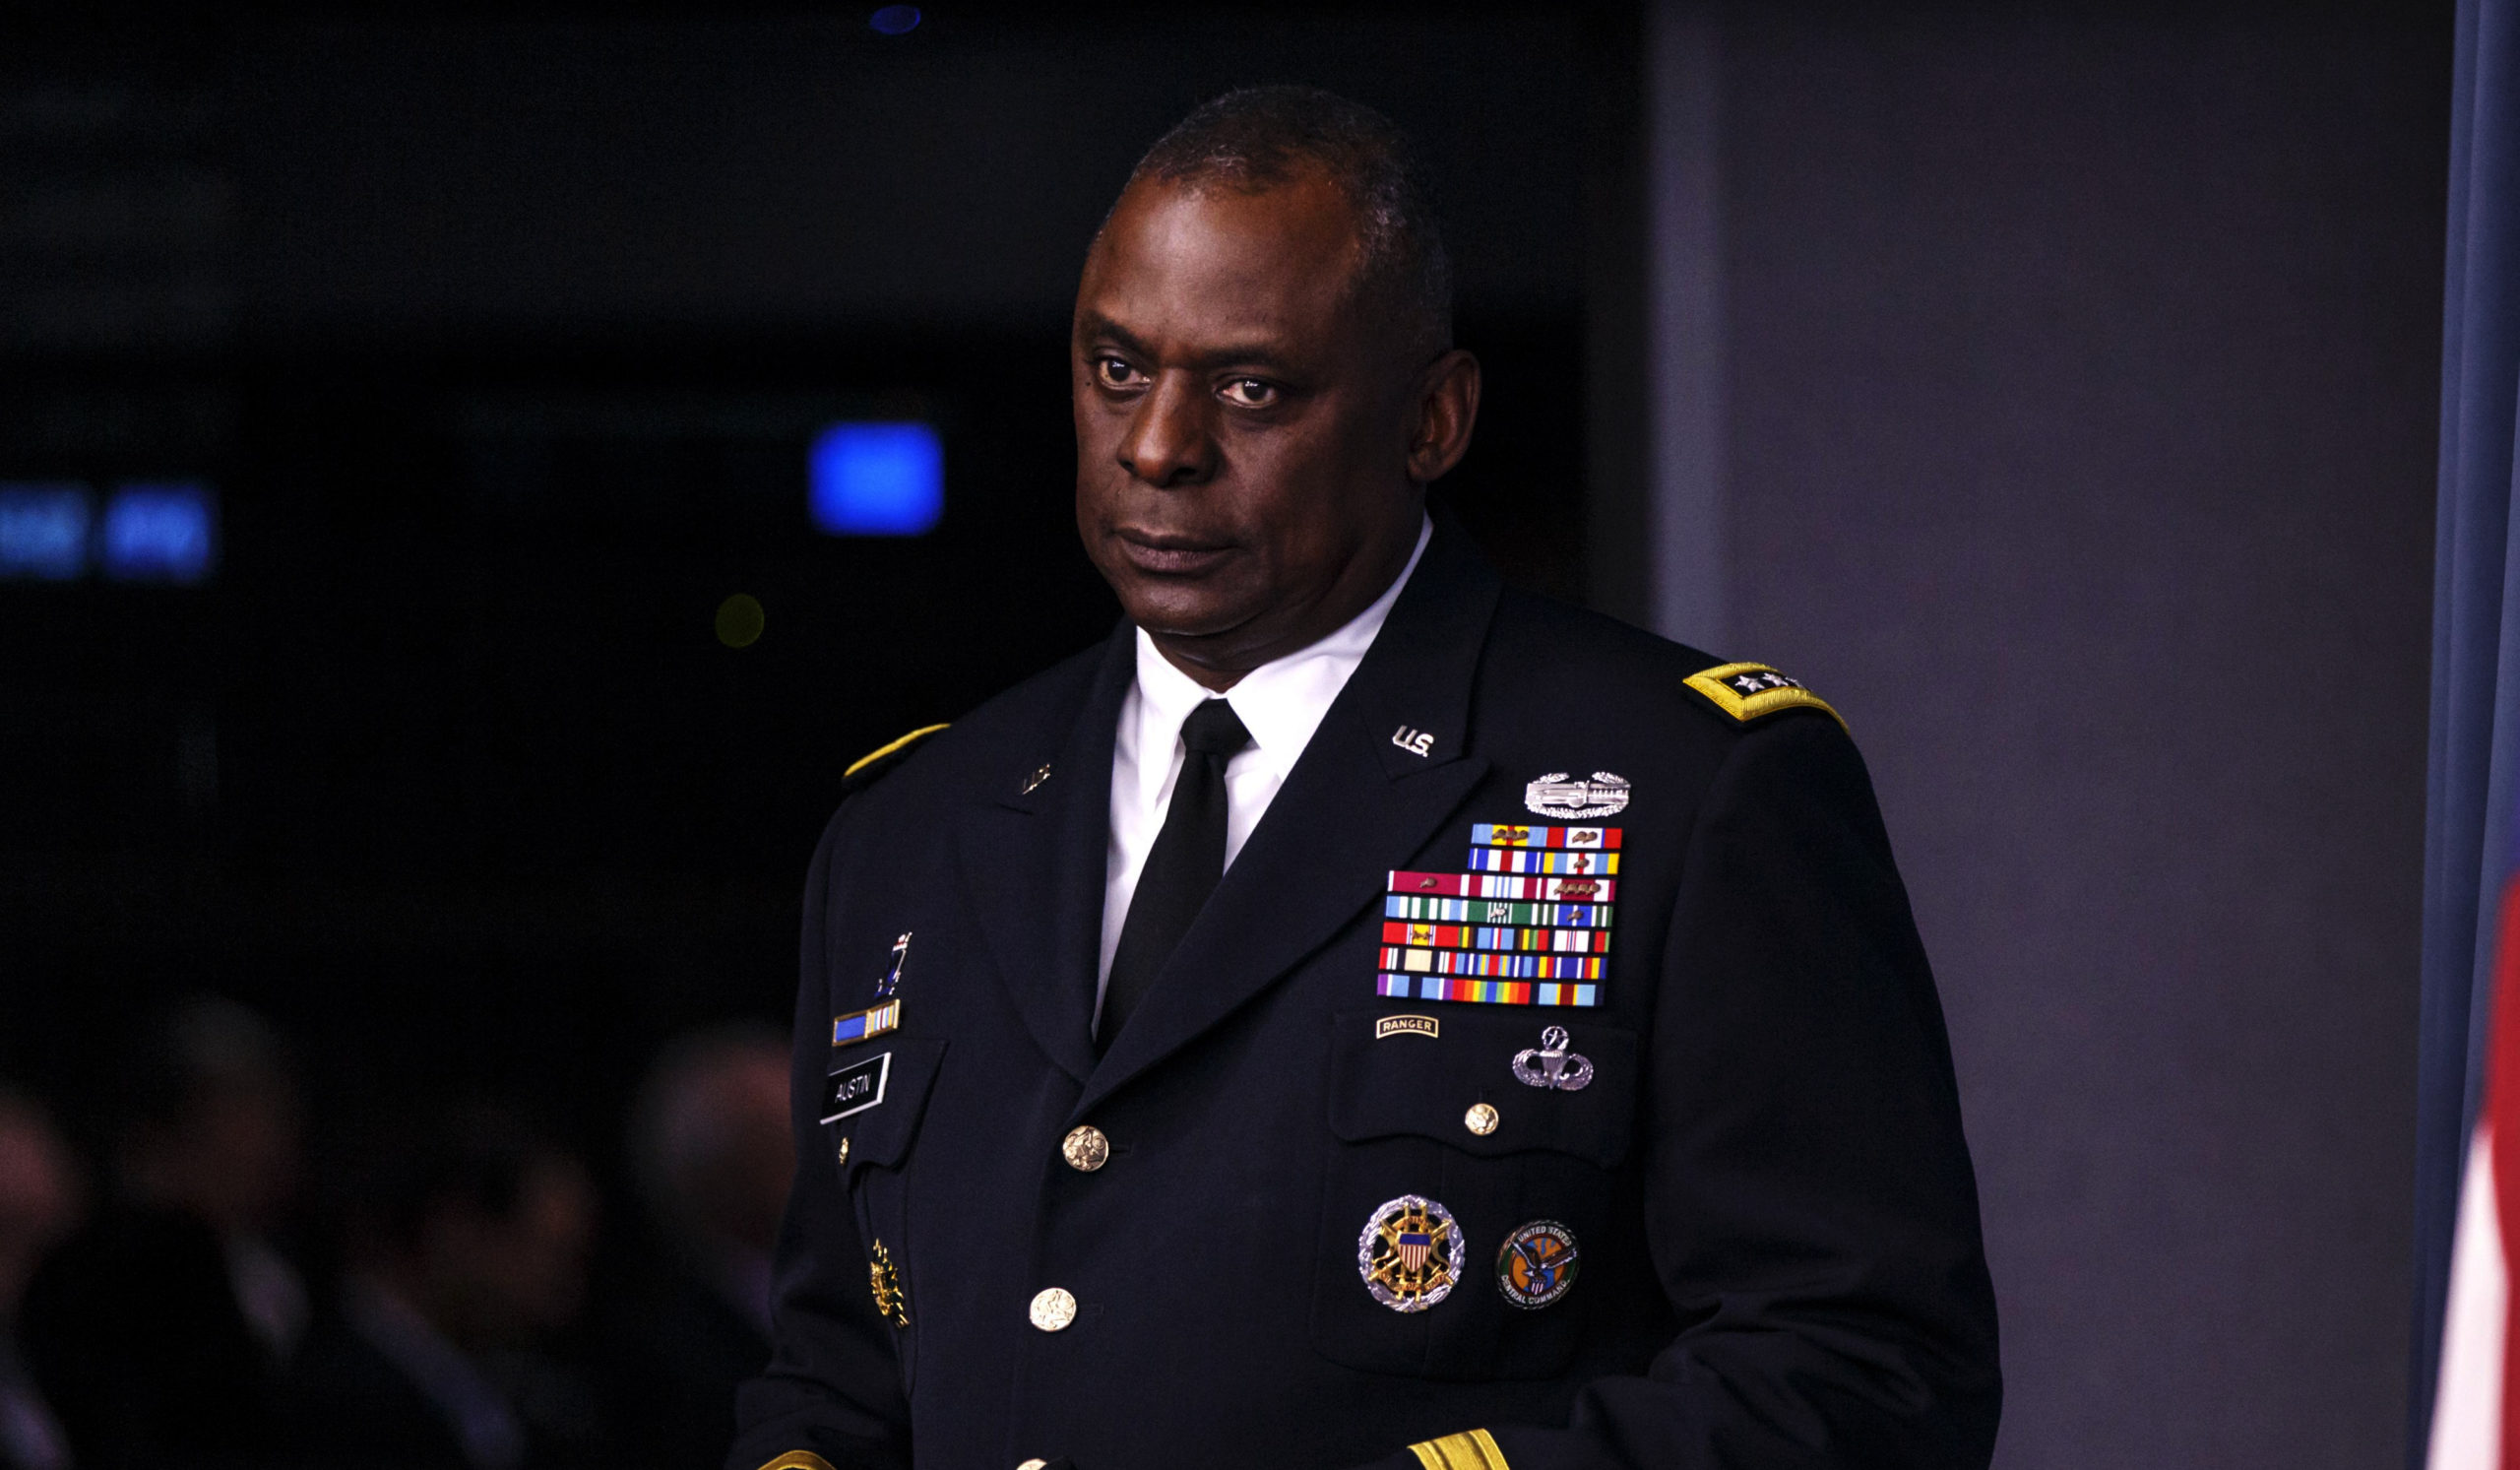 Retired General Lloyd Austin on Jan. 17, 2021